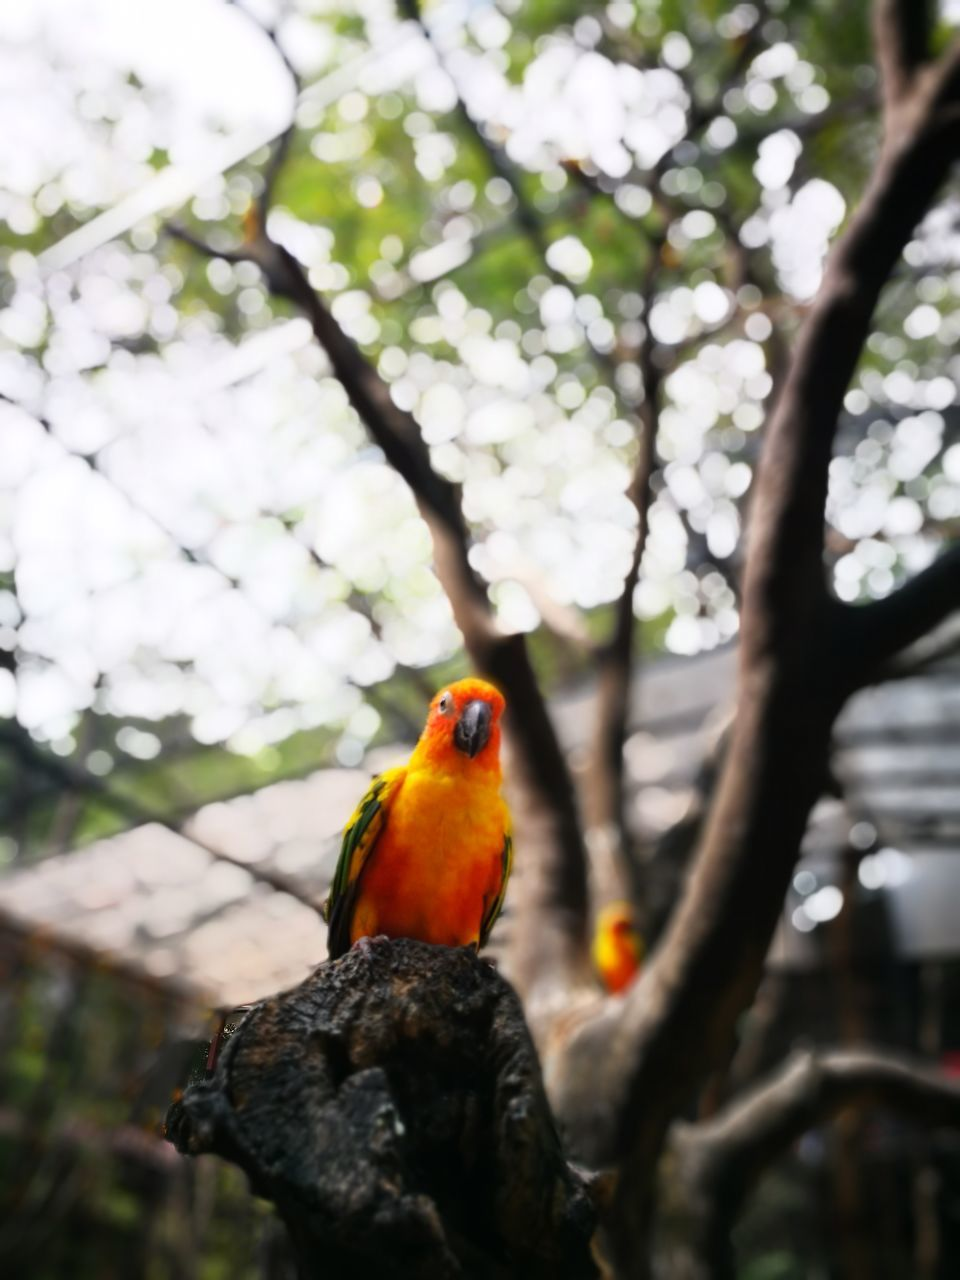 bird, animals in the wild, tree, animal wildlife, animal themes, one animal, perching, nature, day, branch, beauty in nature, parrot, no people, outdoors, rainbow lorikeet, close-up